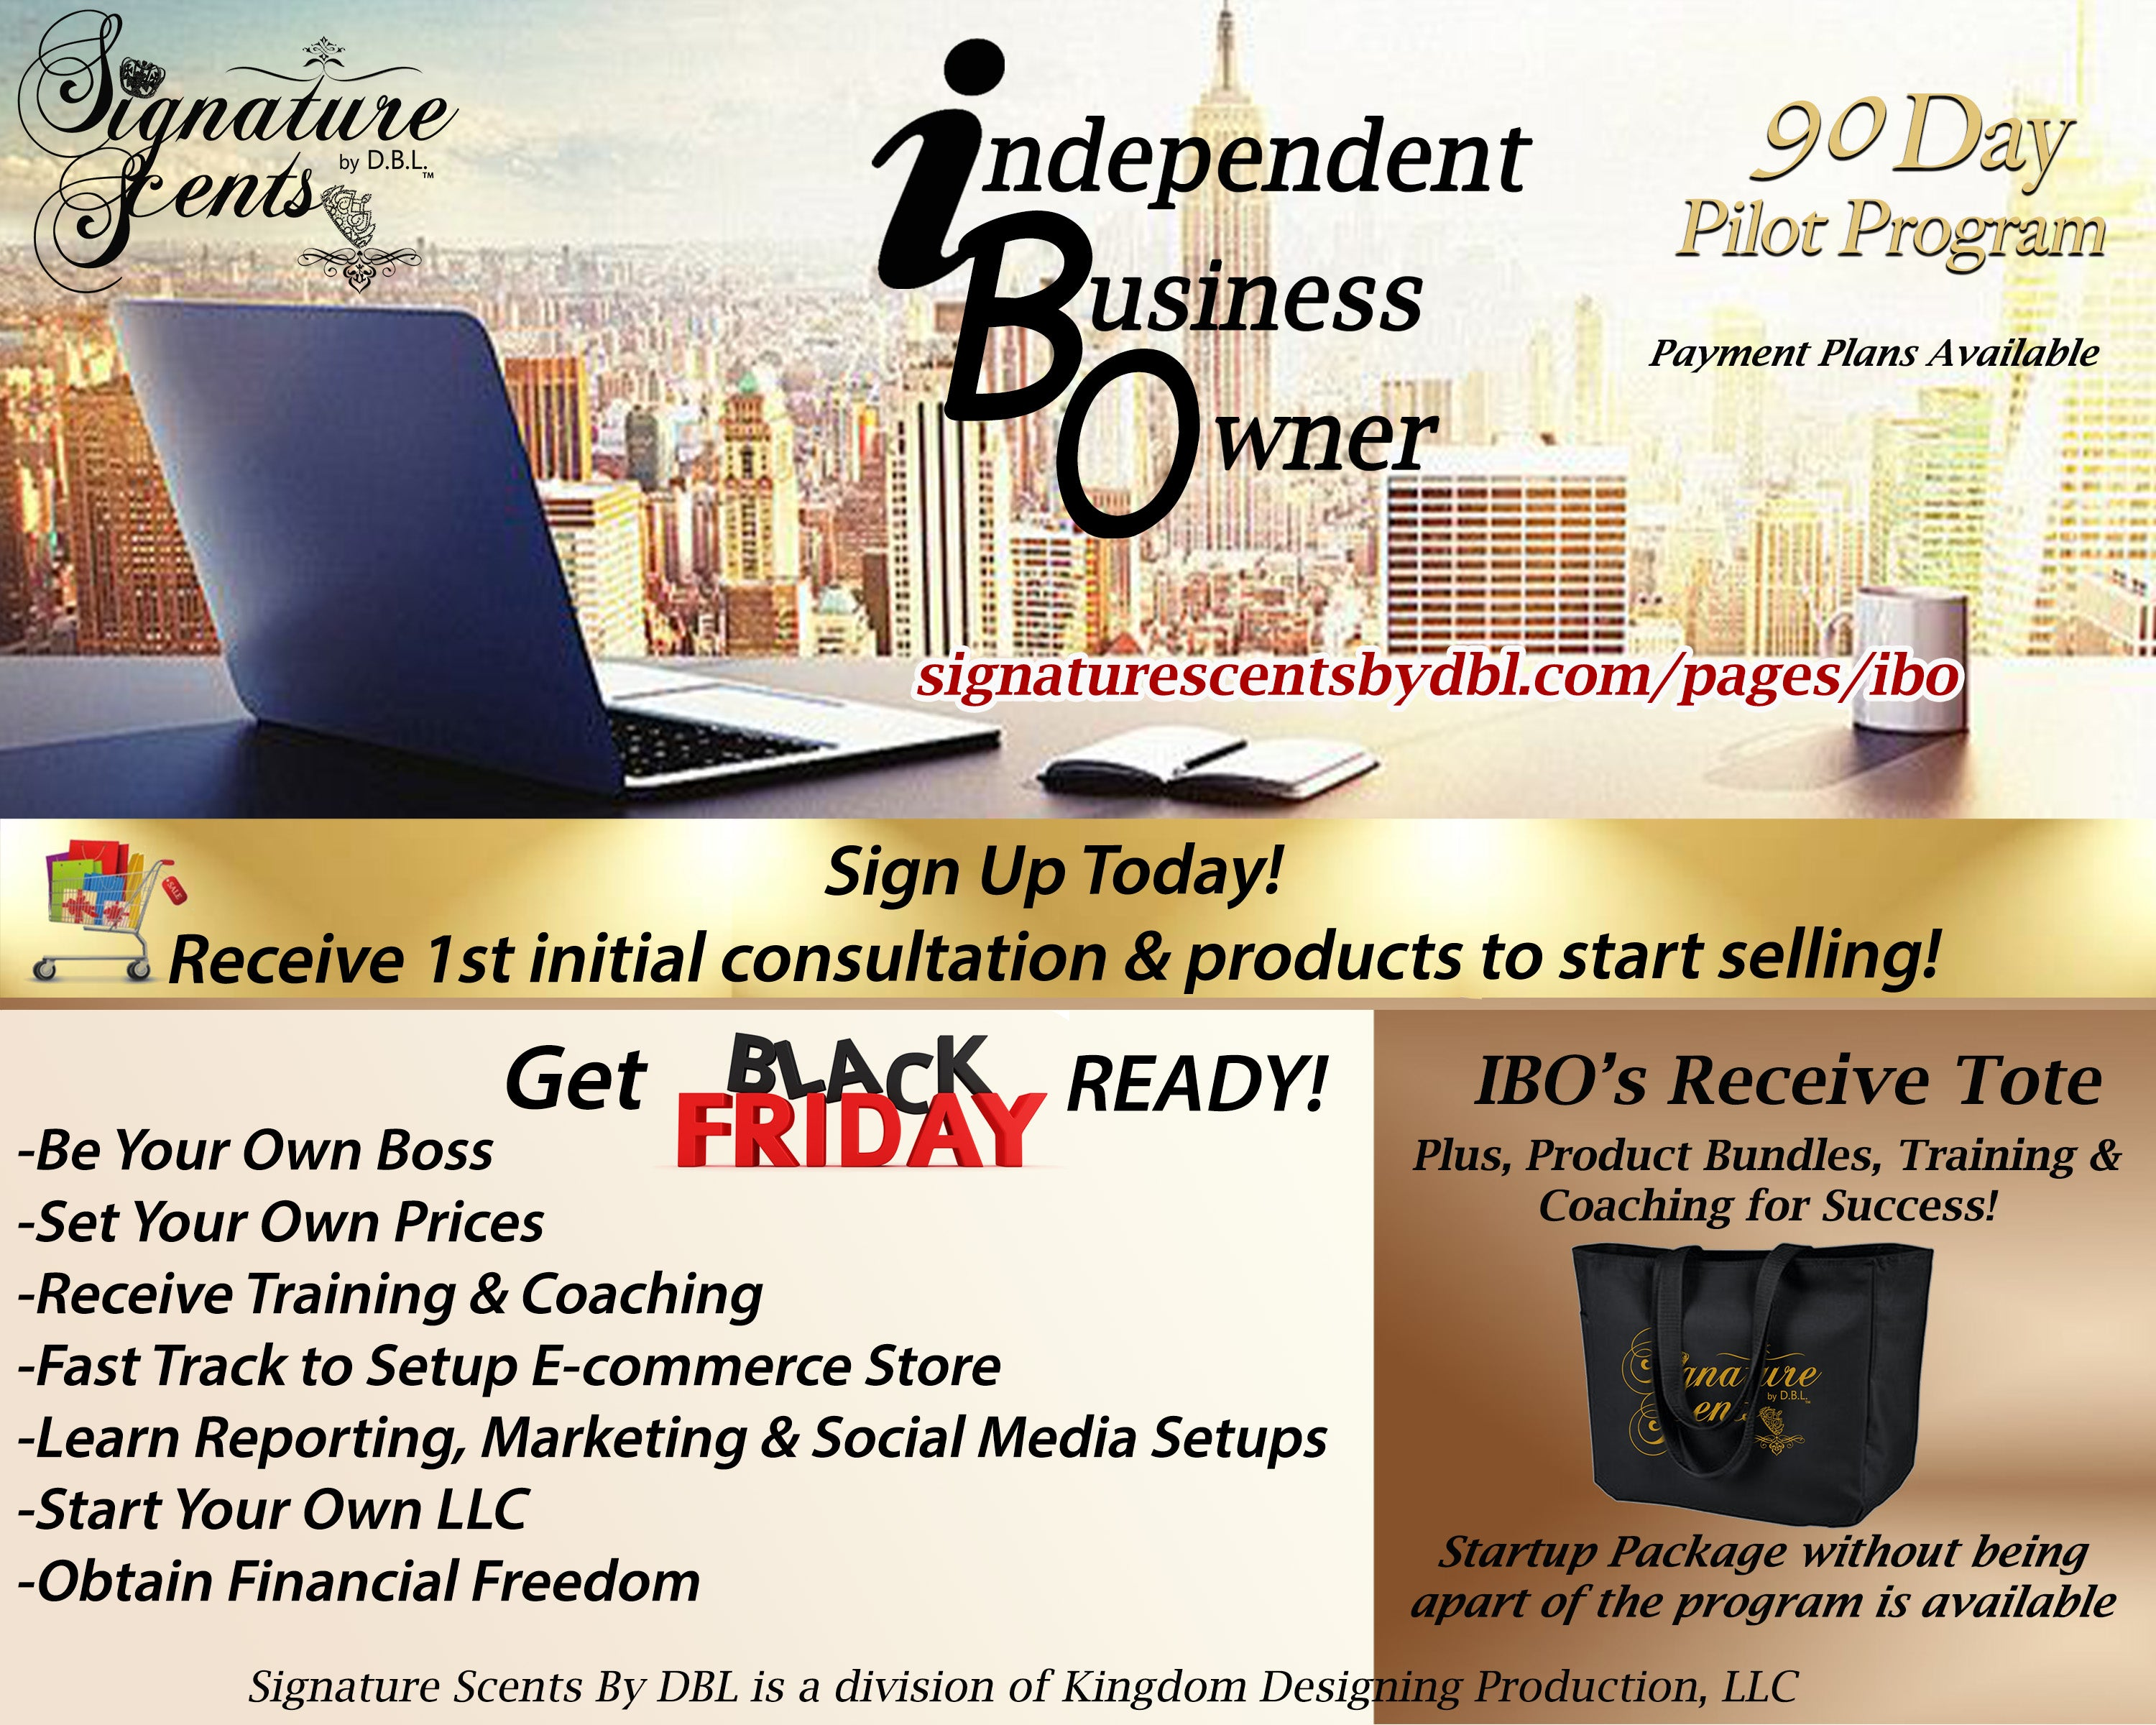 Independent Business Owner 90 Day Pilot Program